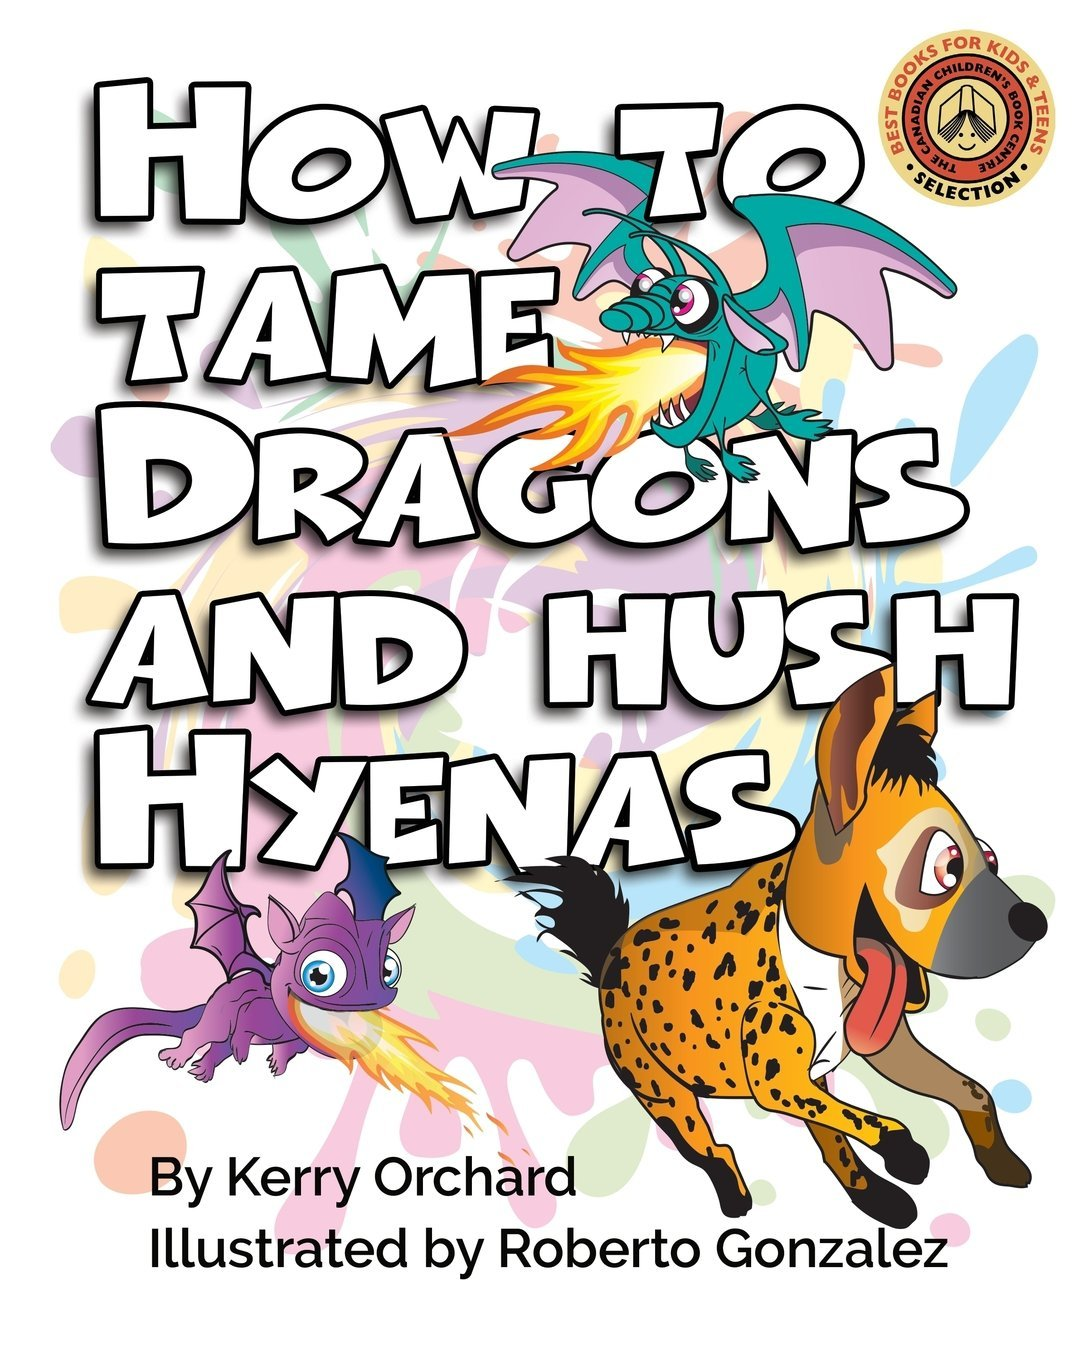 How to Tame Dragons and Hush Hyenas (The Adventure in Behaviour Series) pdf epub